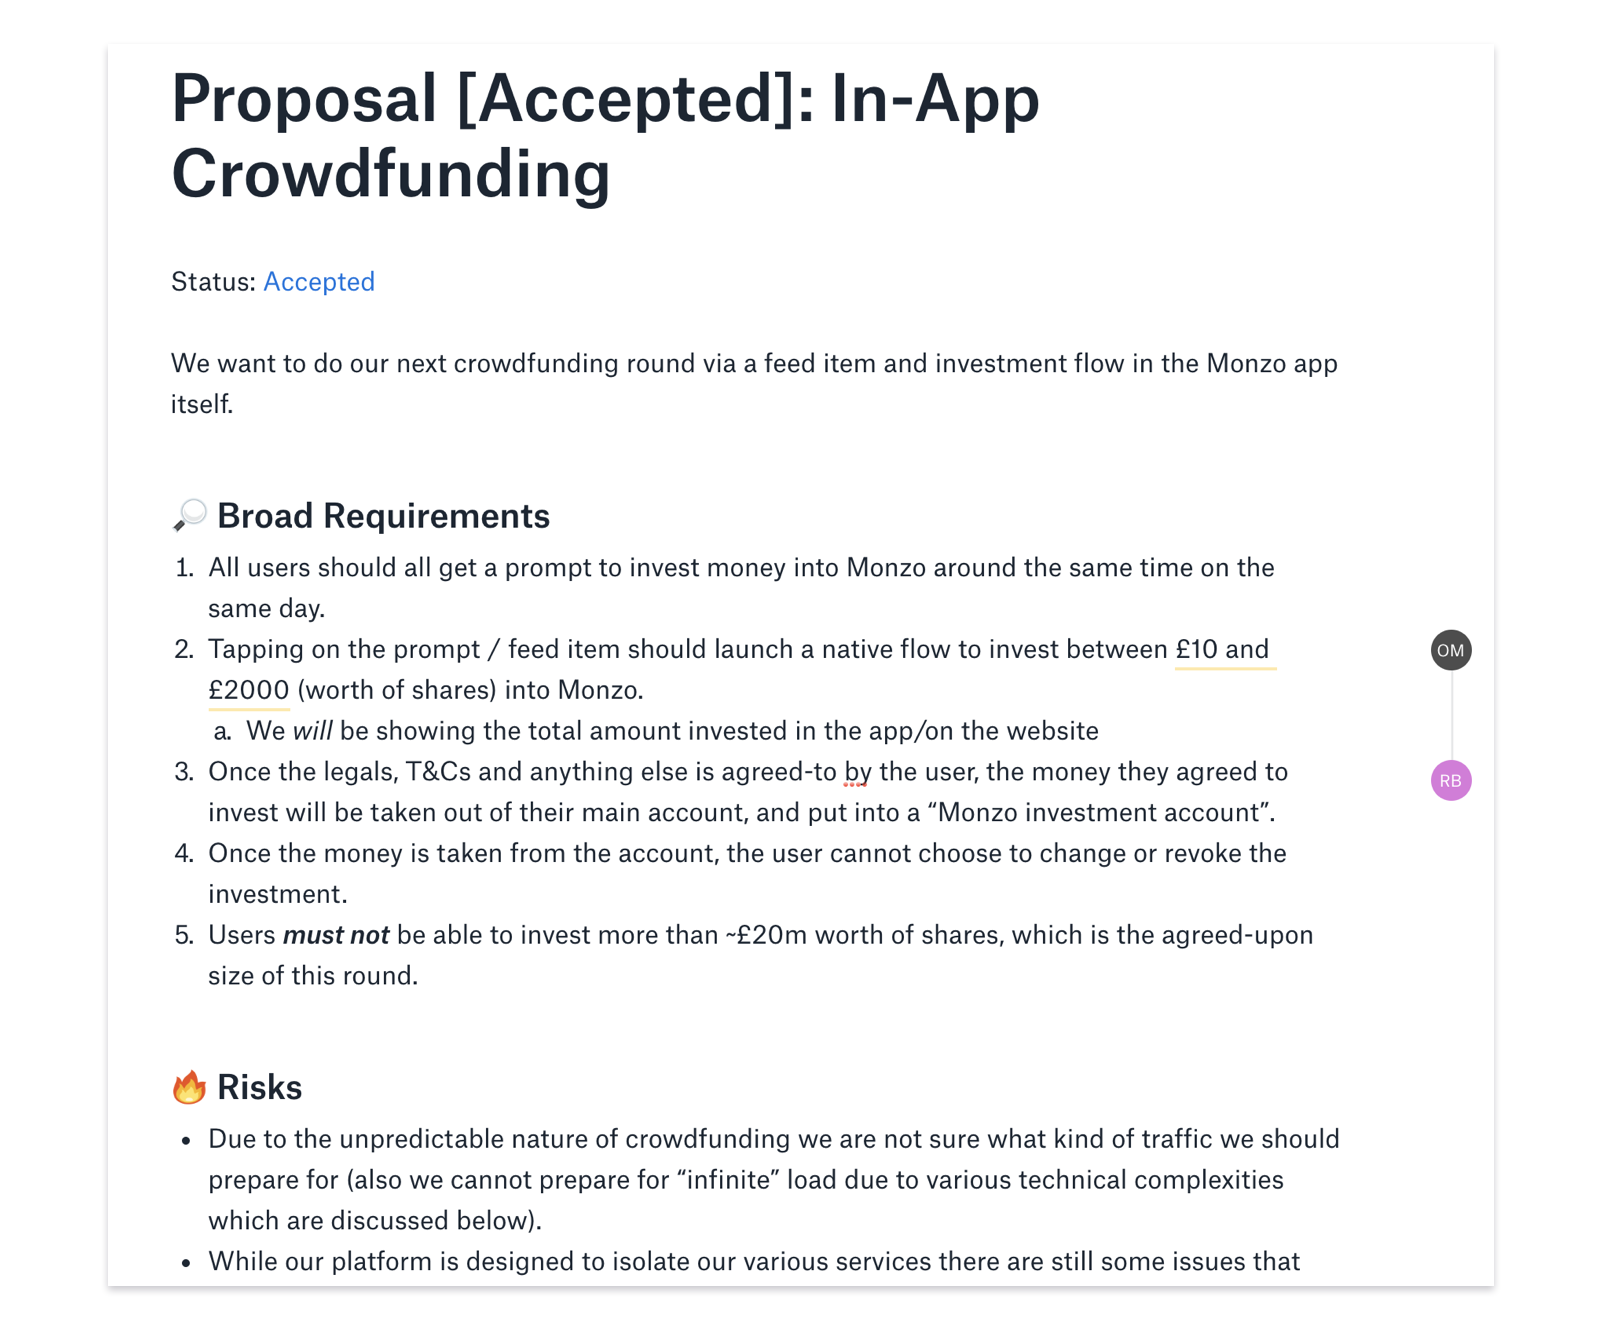 Proposal document for building crowdfunding in-app